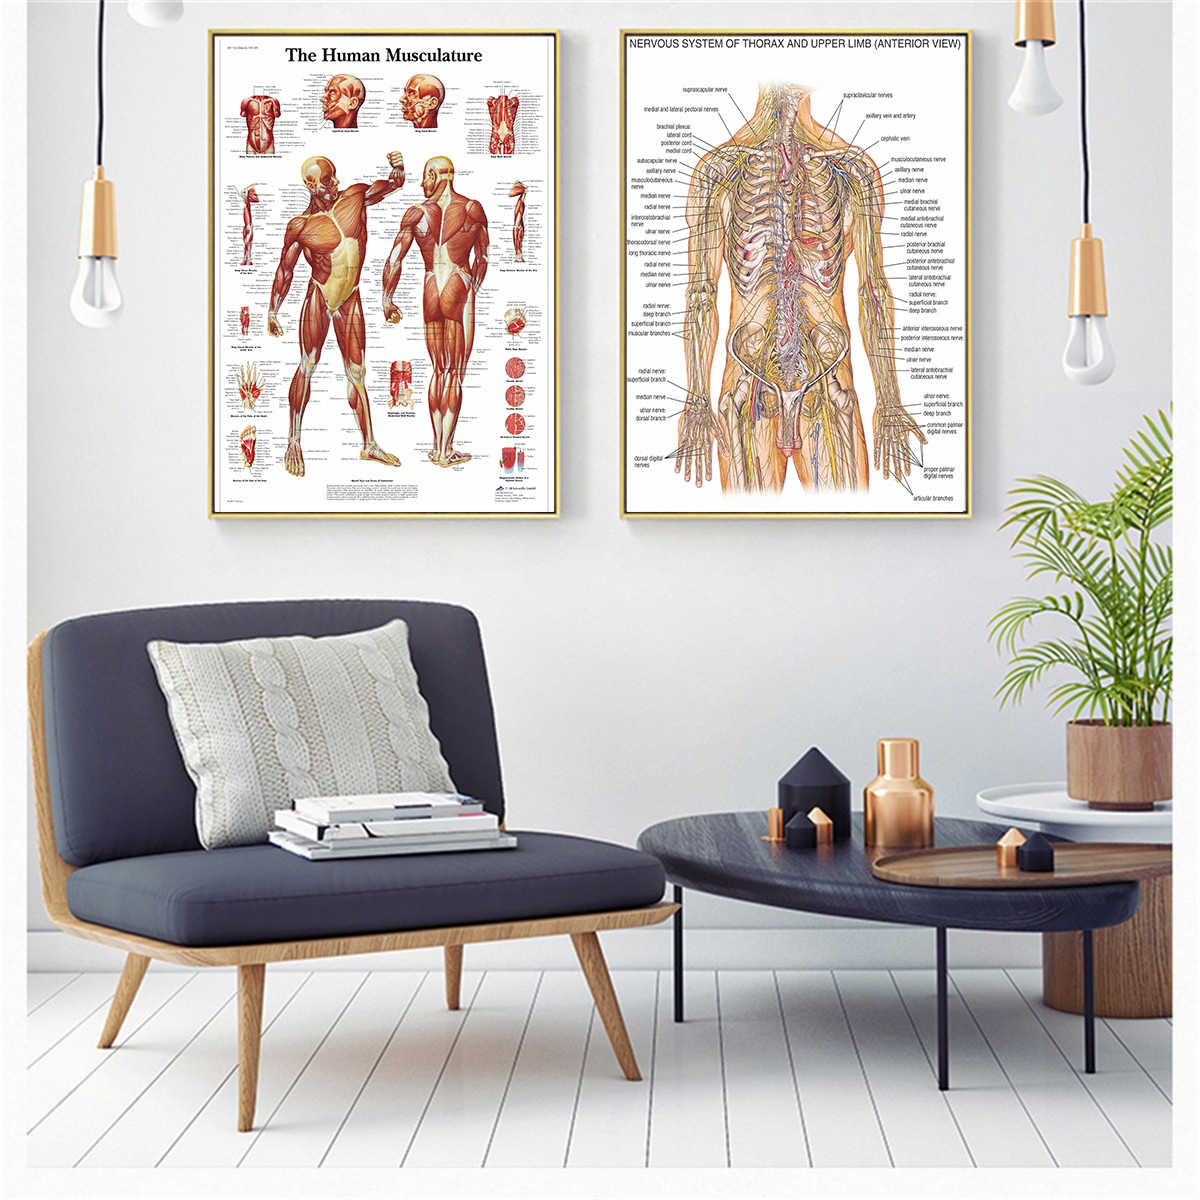 Decoracion Vintage Salon Skeletal Anatomy Skull Vintage Poster Canvas Painting Cuadros Decoracion Salon Poster And Prints Wall Art Pictures